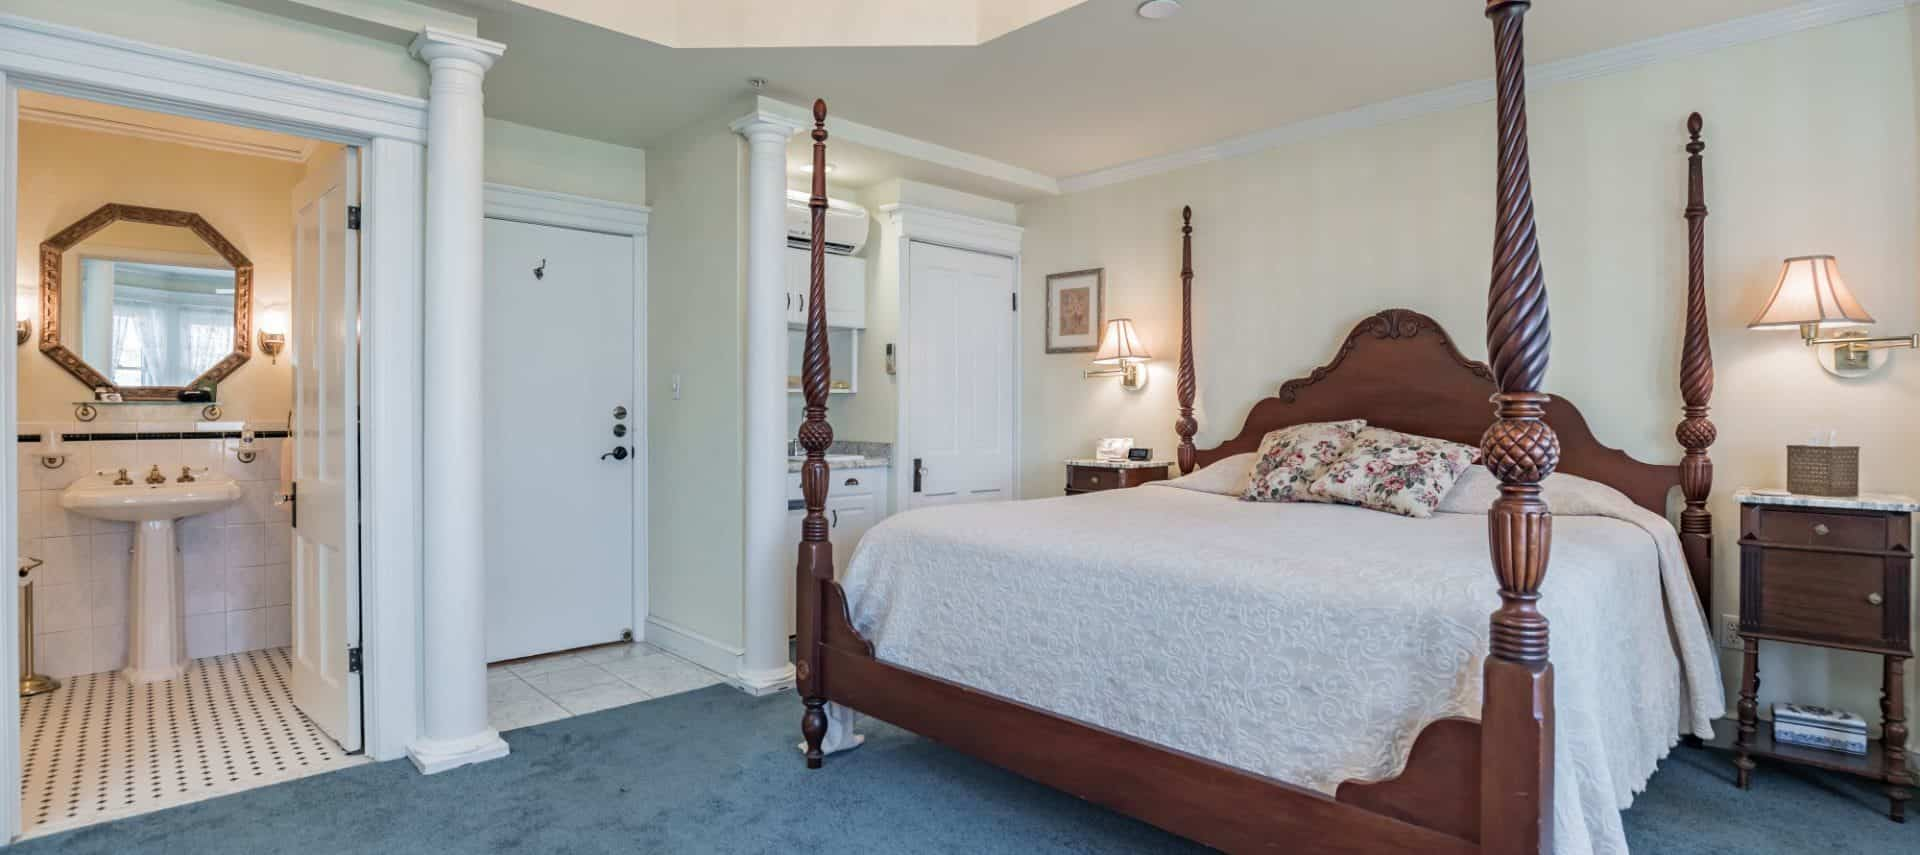 Bedroom with light cream walls, white trim, blue carpeting, four-poster wooden bed, white bedding, and view into bathroom